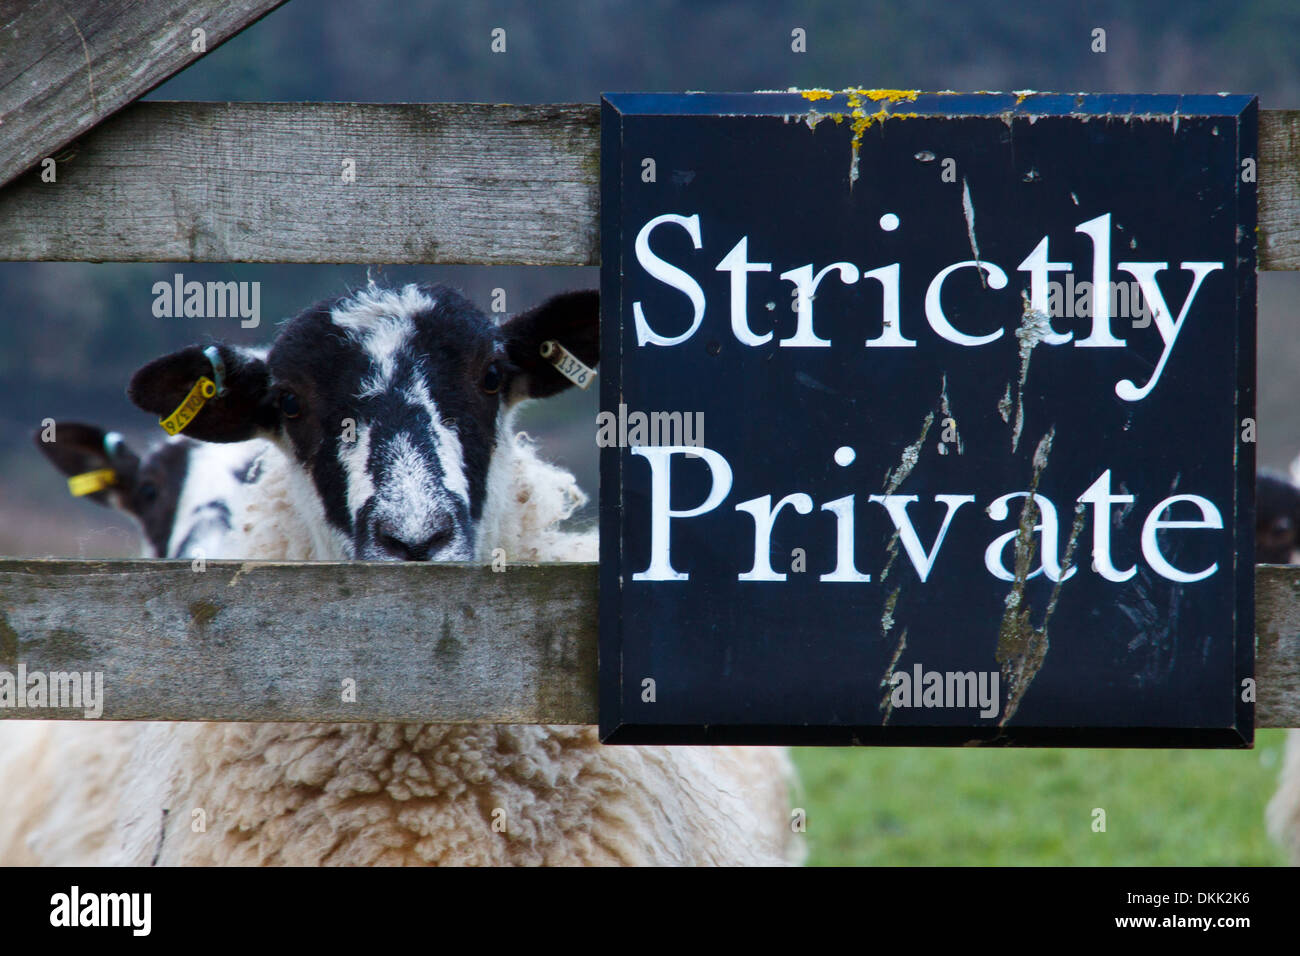 Strictly Private Members Only Sheep - Stock Image